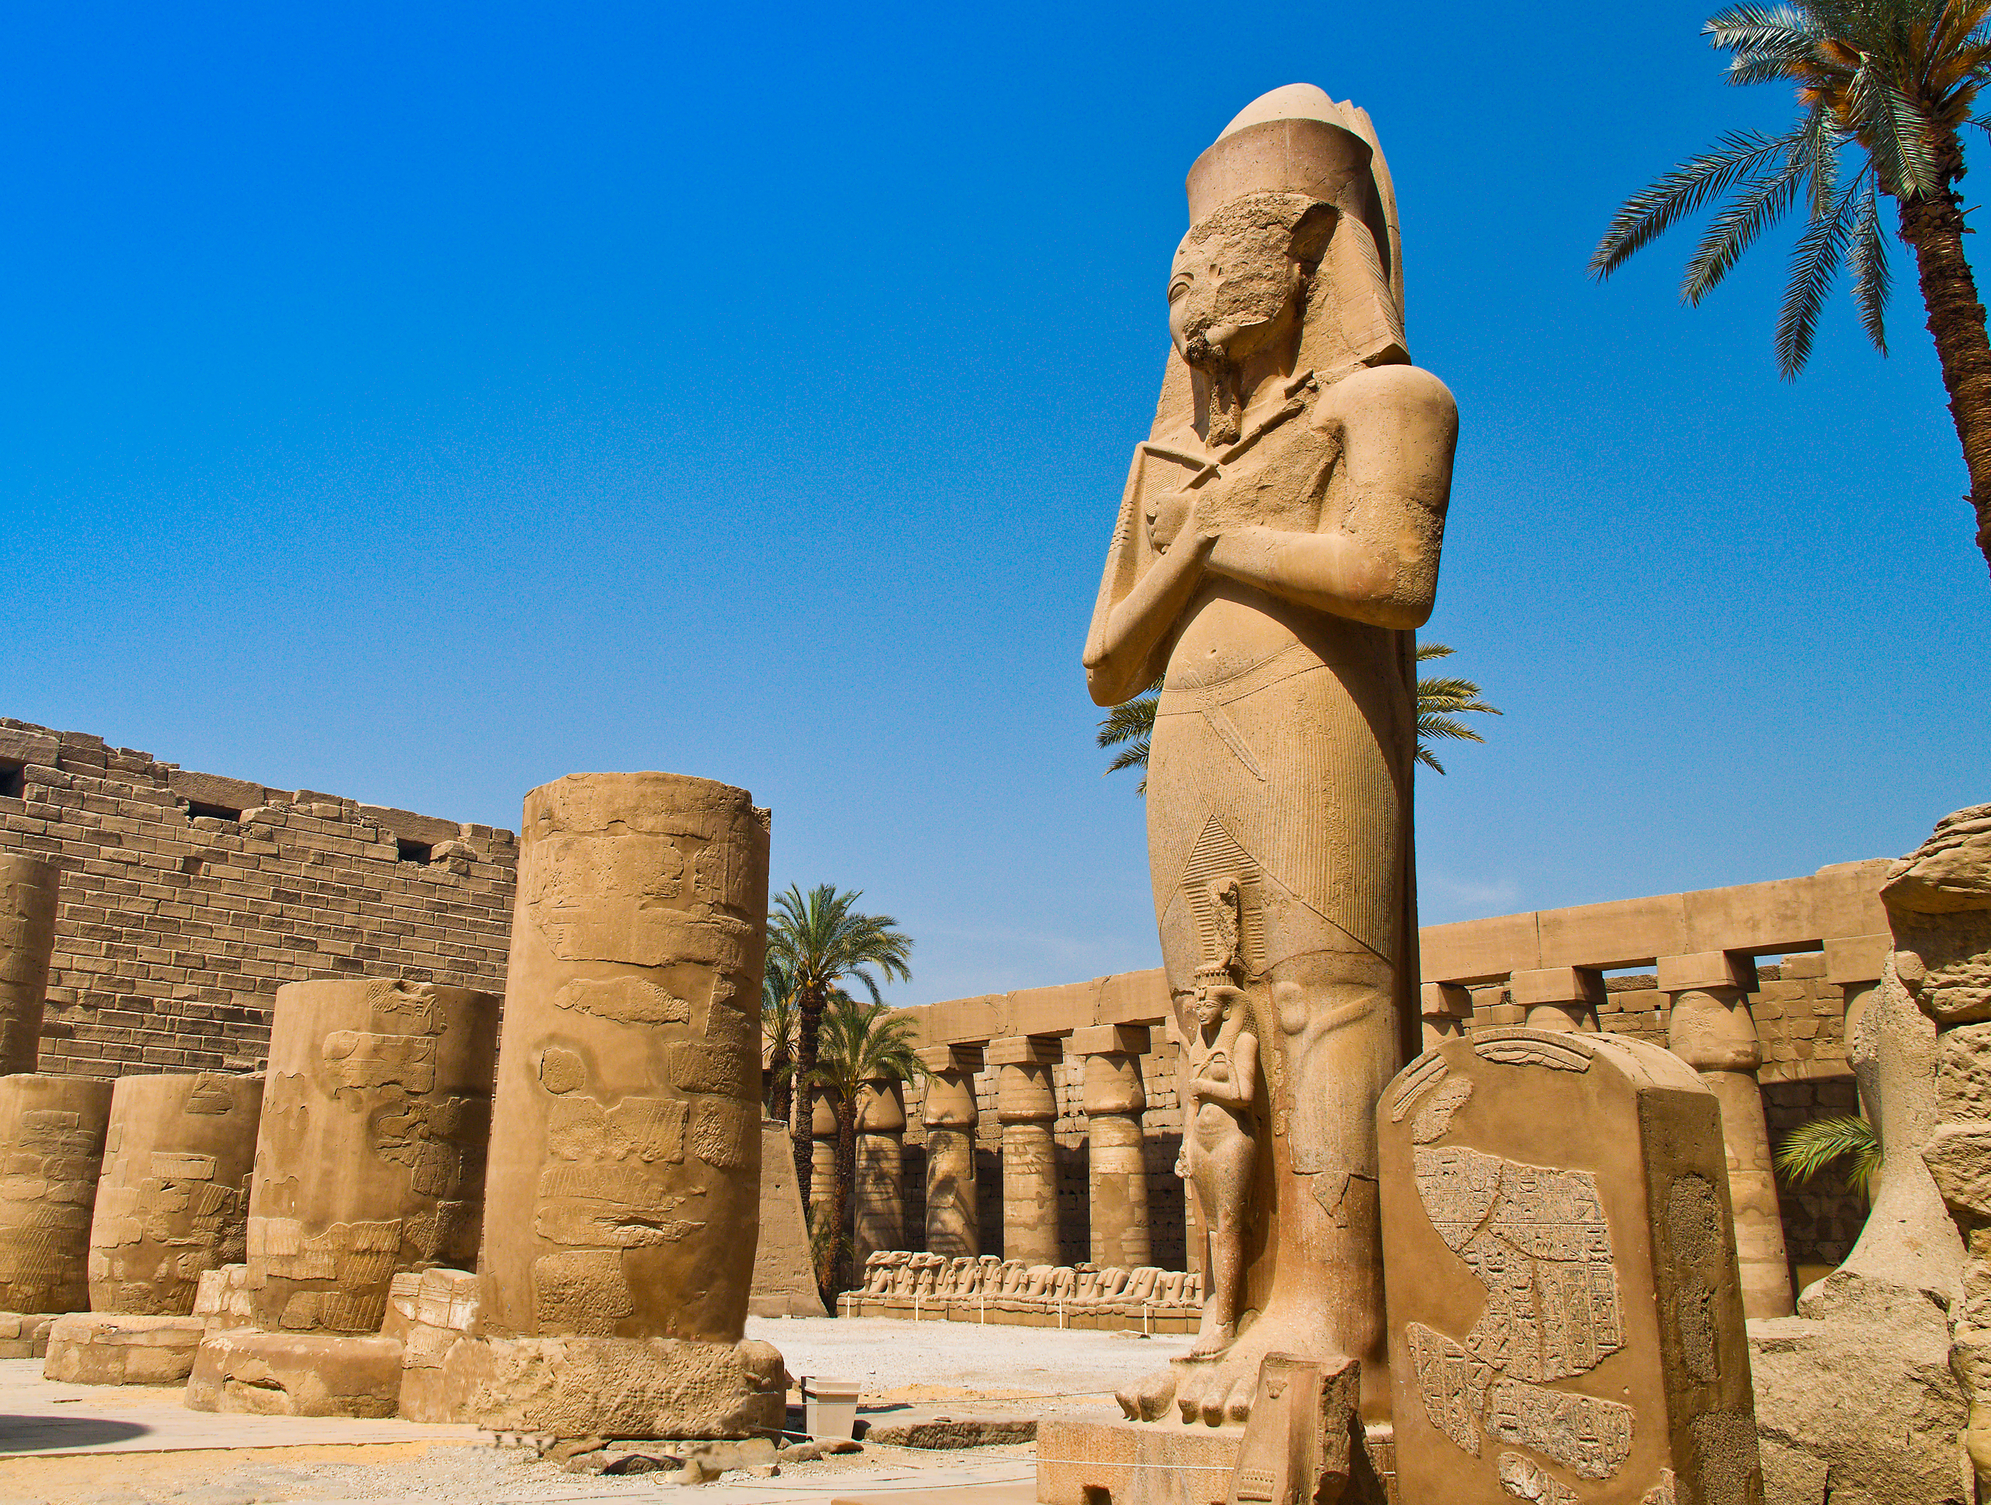 The Ultimate Guide To Planning A Trip To Egypt